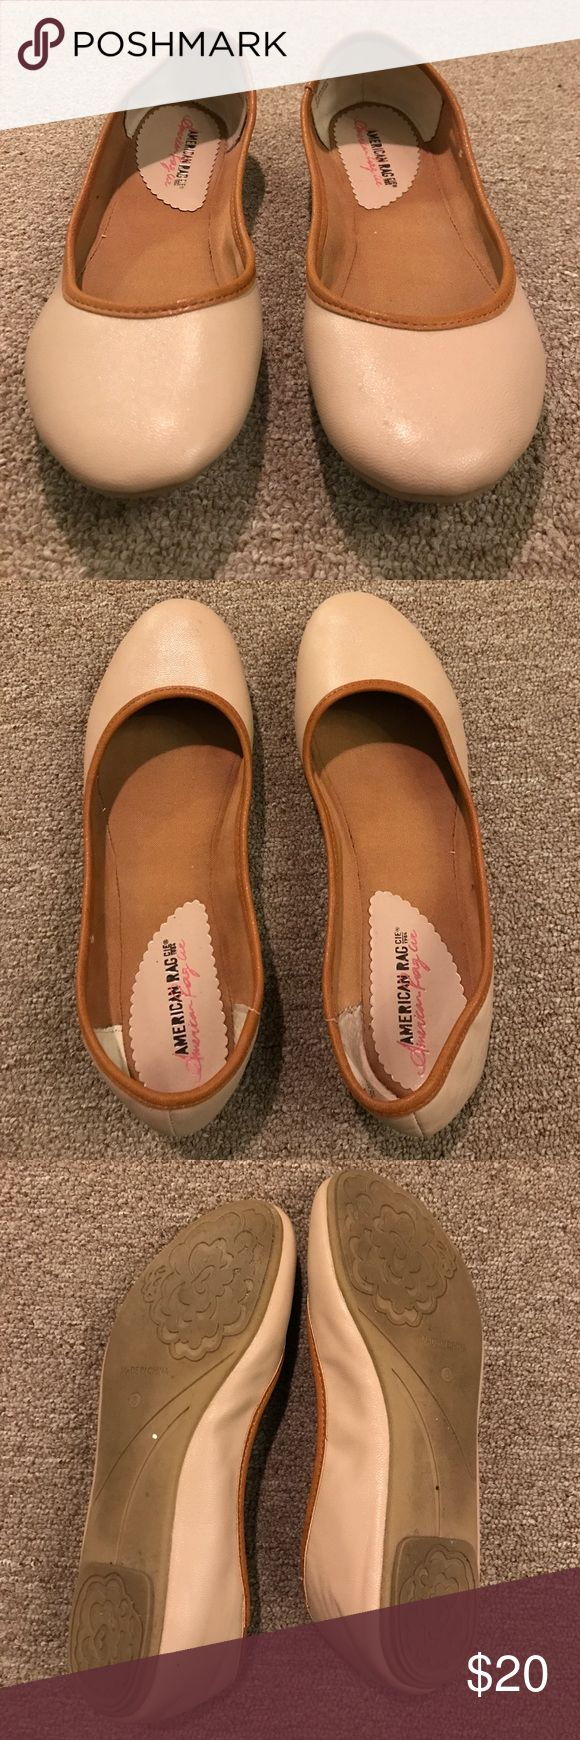 nude-colored-flats